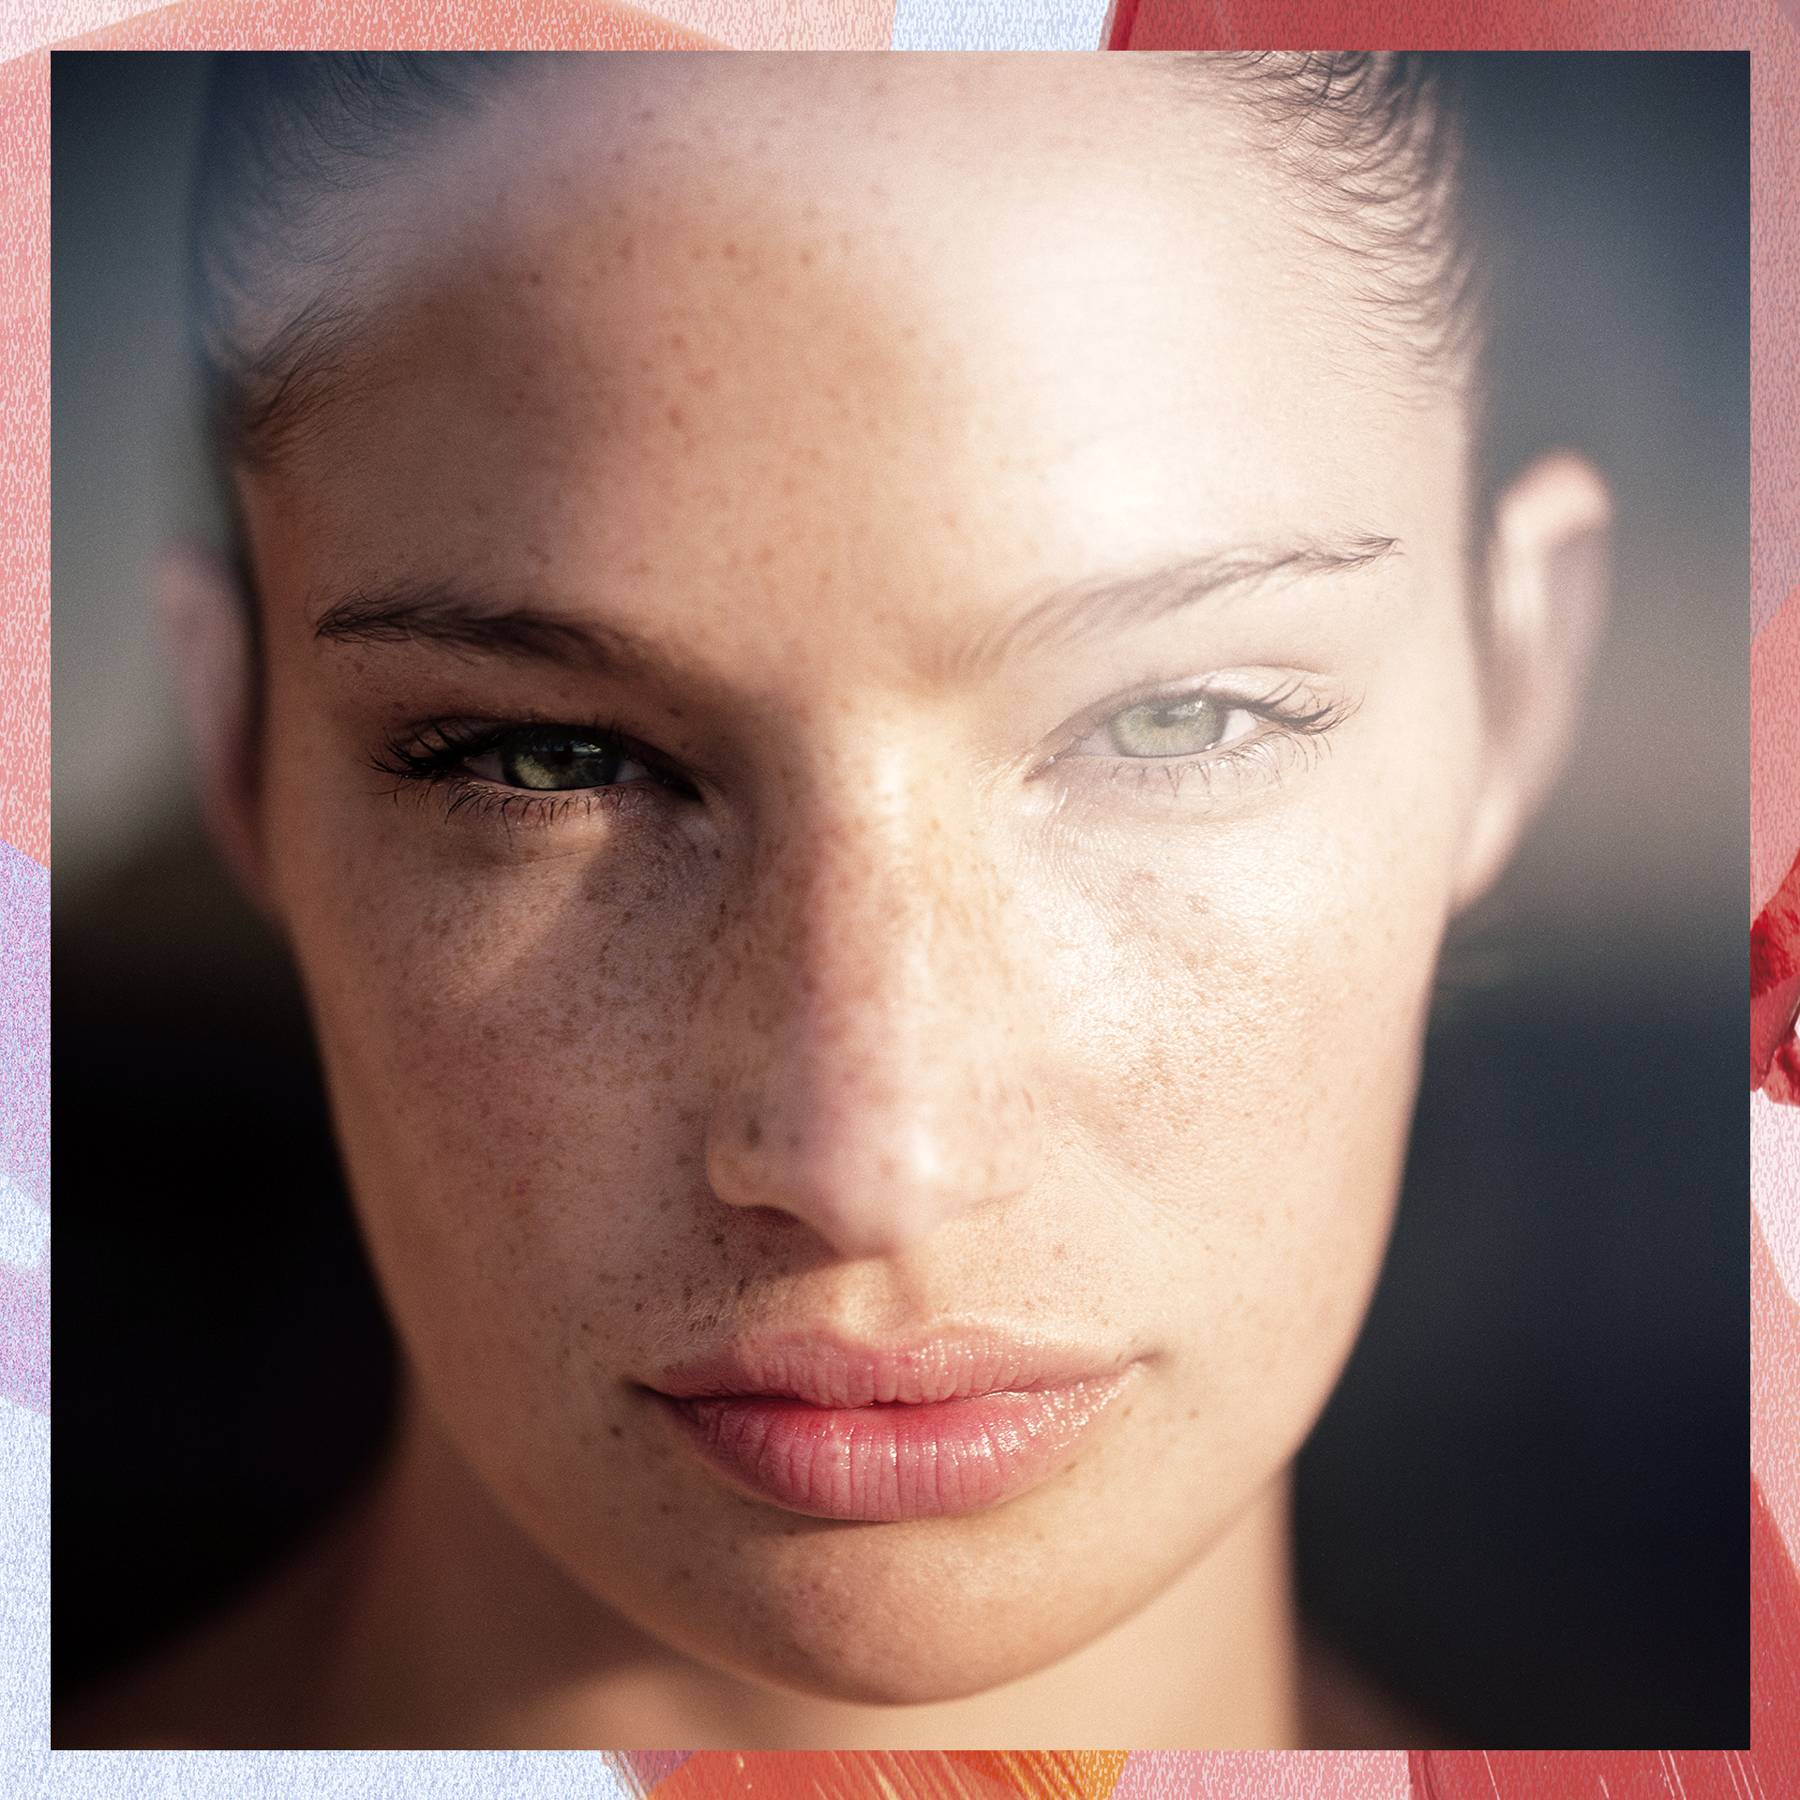 Here's how to get glowing skin without putting a single thing on your face